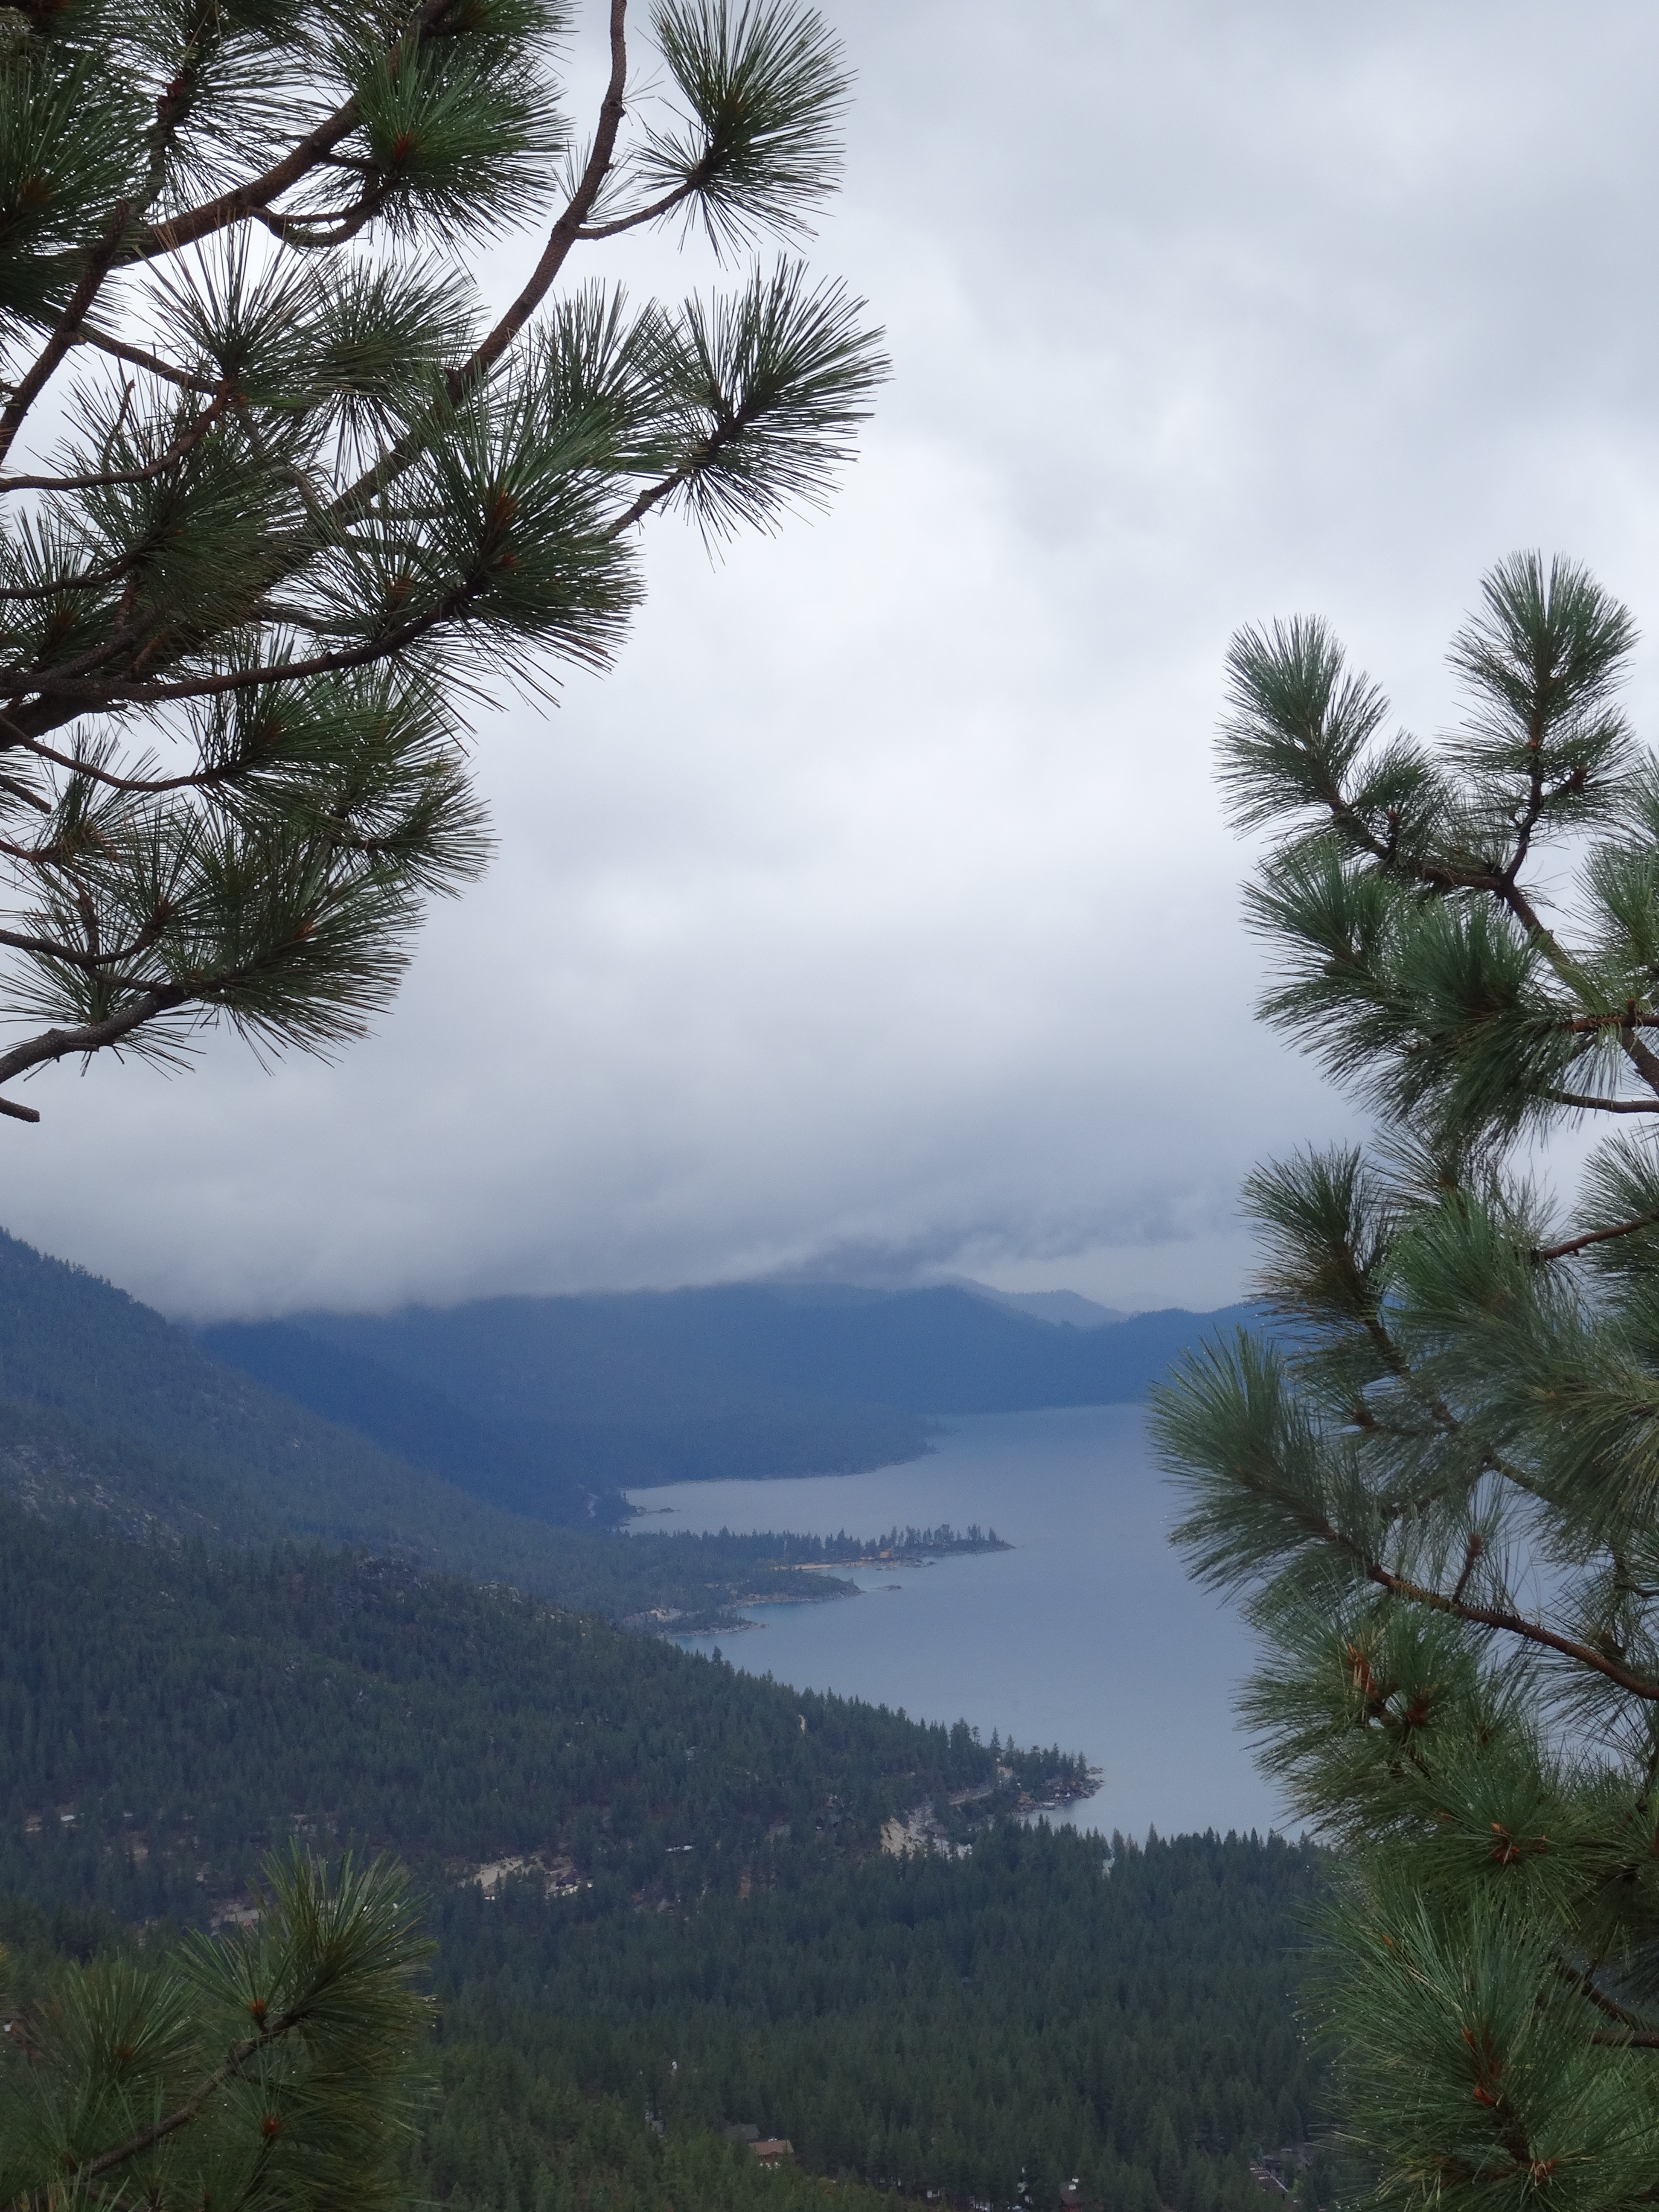 View of North Lake Tahoe heading up Mt Rose Hwy